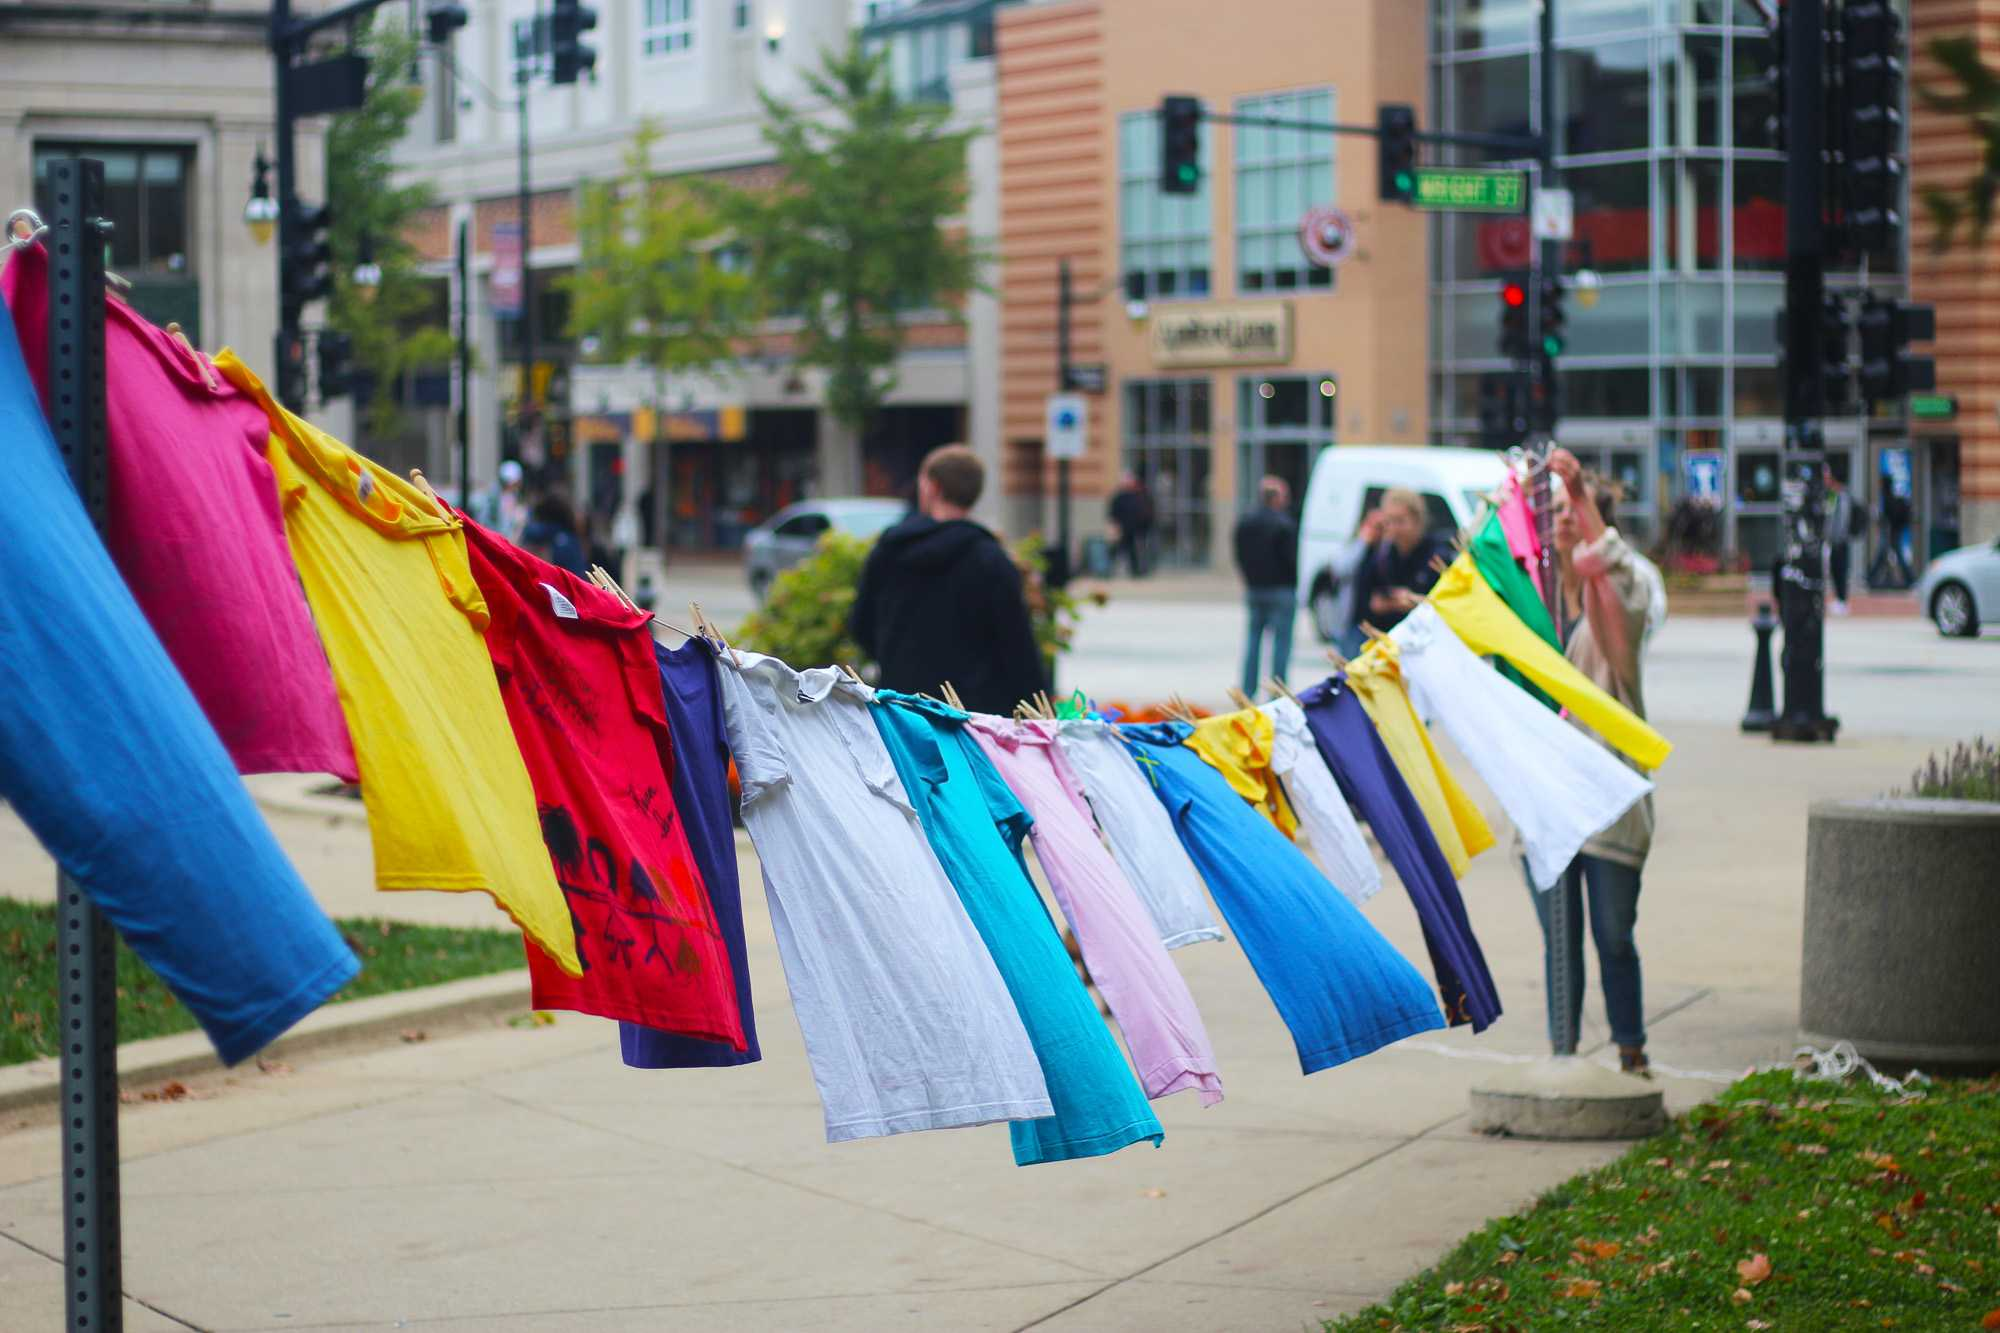 The Clothesline Project served as an anonymous outlet for domestic violence survivors by the Alma Mater on Thursday.